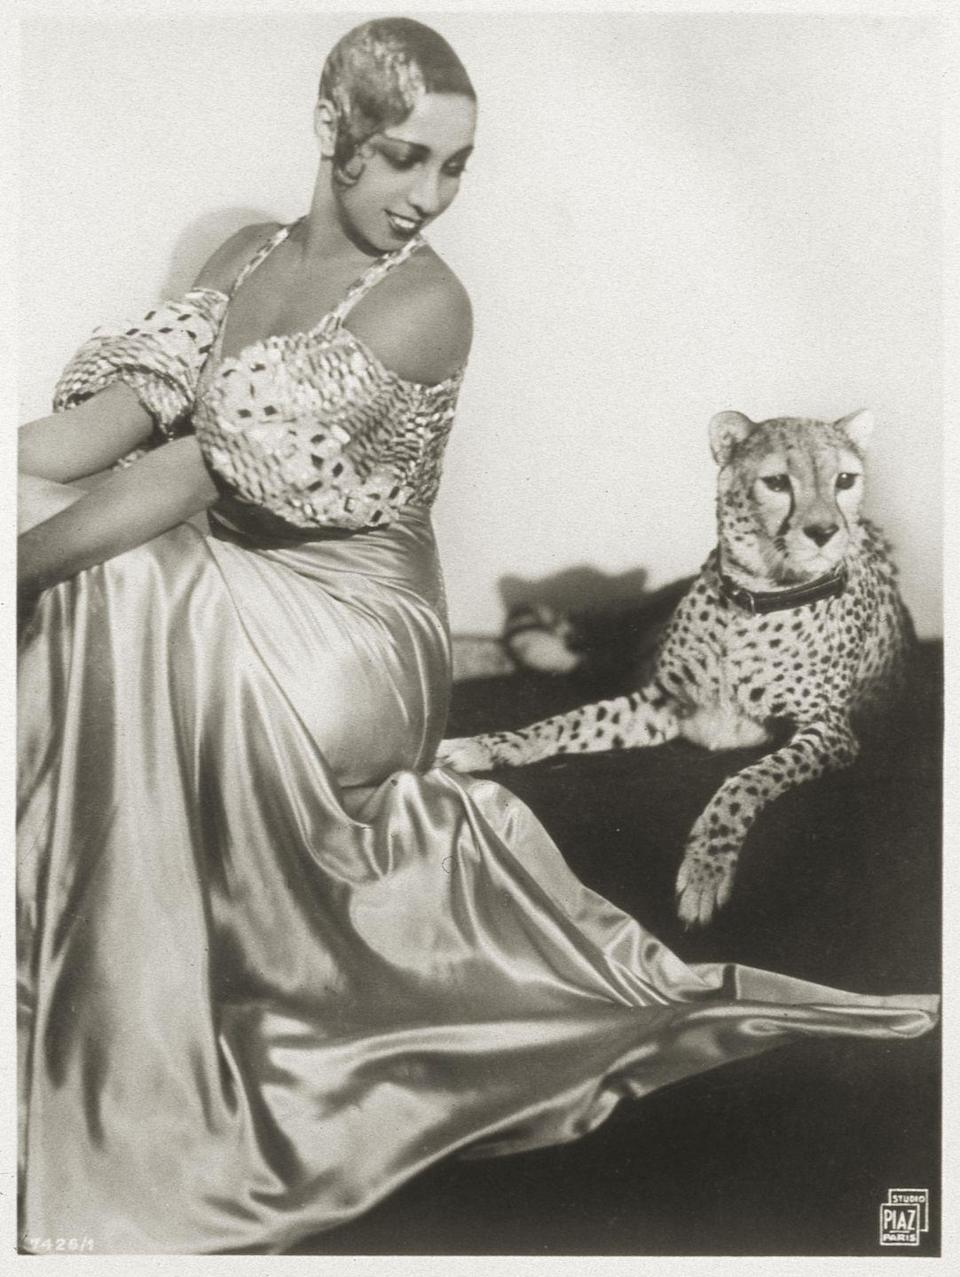 """<p>Josephine Baker was given her pet cheetah, Chiquita, as a <a href=""""https://www.mentalfloss.com/article/23148/5-things-you-didnt-know-about-josephine-baker"""" rel=""""nofollow noopener"""" target=""""_blank"""" data-ylk=""""slk:gift from her nightclub's owner"""" class=""""link rapid-noclick-resp"""">gift from her nightclub's owner</a> for her to use in her act. However, after the show ended, Josephine kept Chiquita as a personal pet. But her Cheetah wasn't the only pet in her life: The entertainer also had a pet goat named Toutoute and a pig named Albert. </p>"""